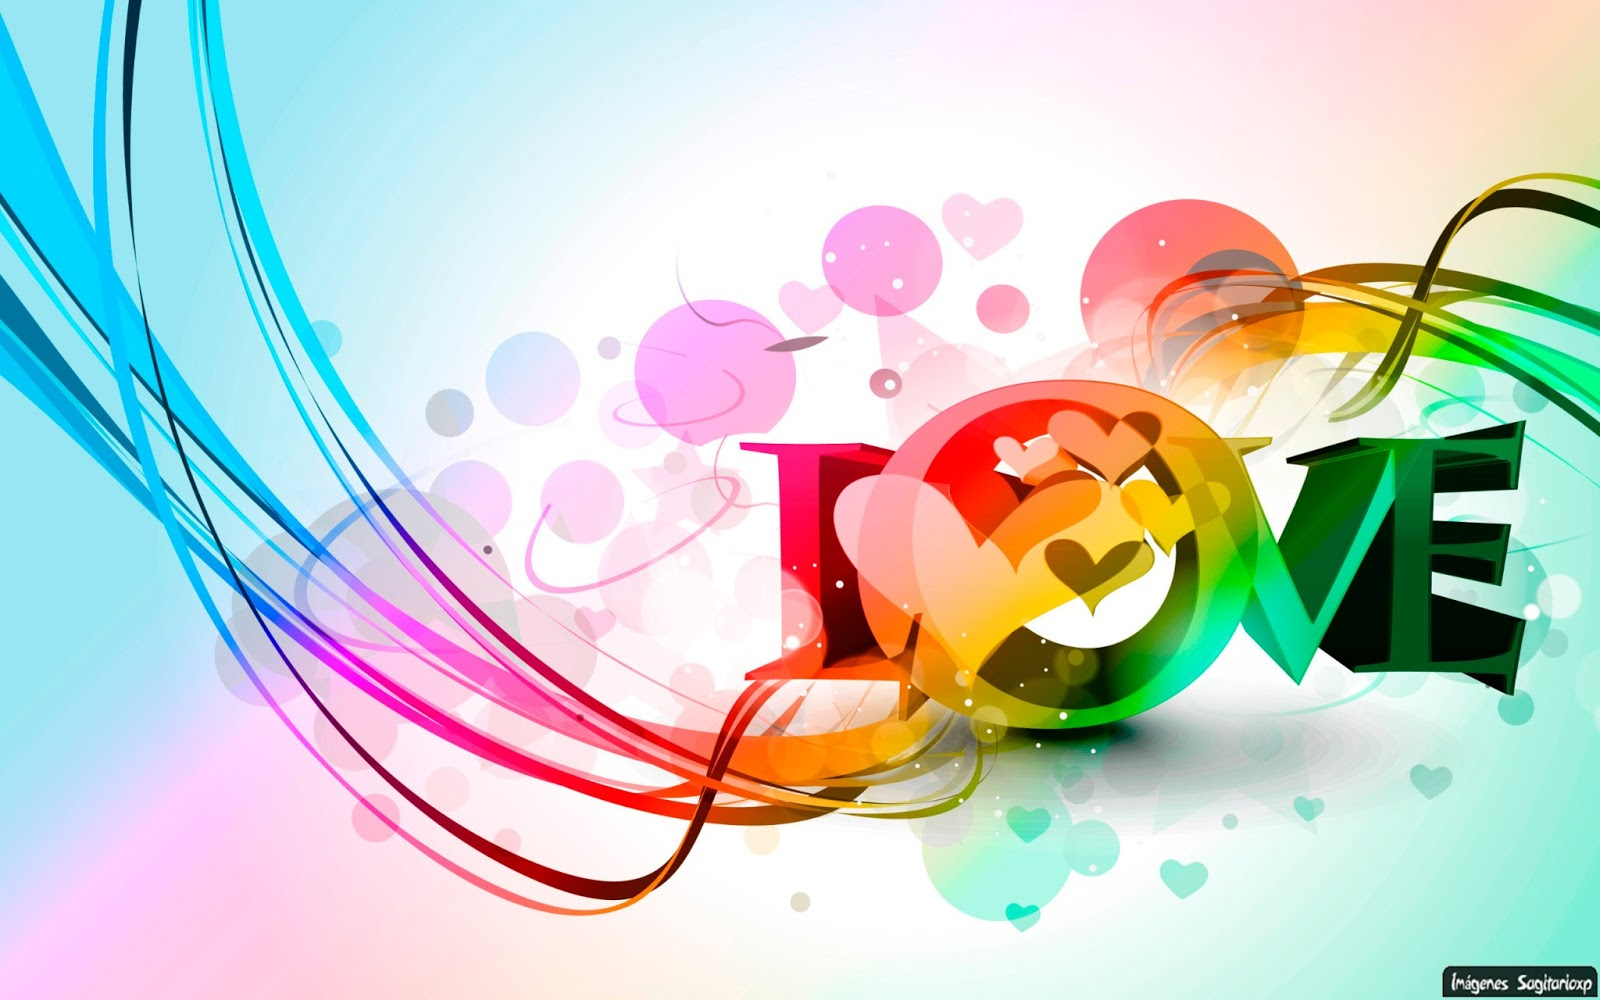 Amor a todo color wallpaper im genes para compartir for Imagenes para wallpaper